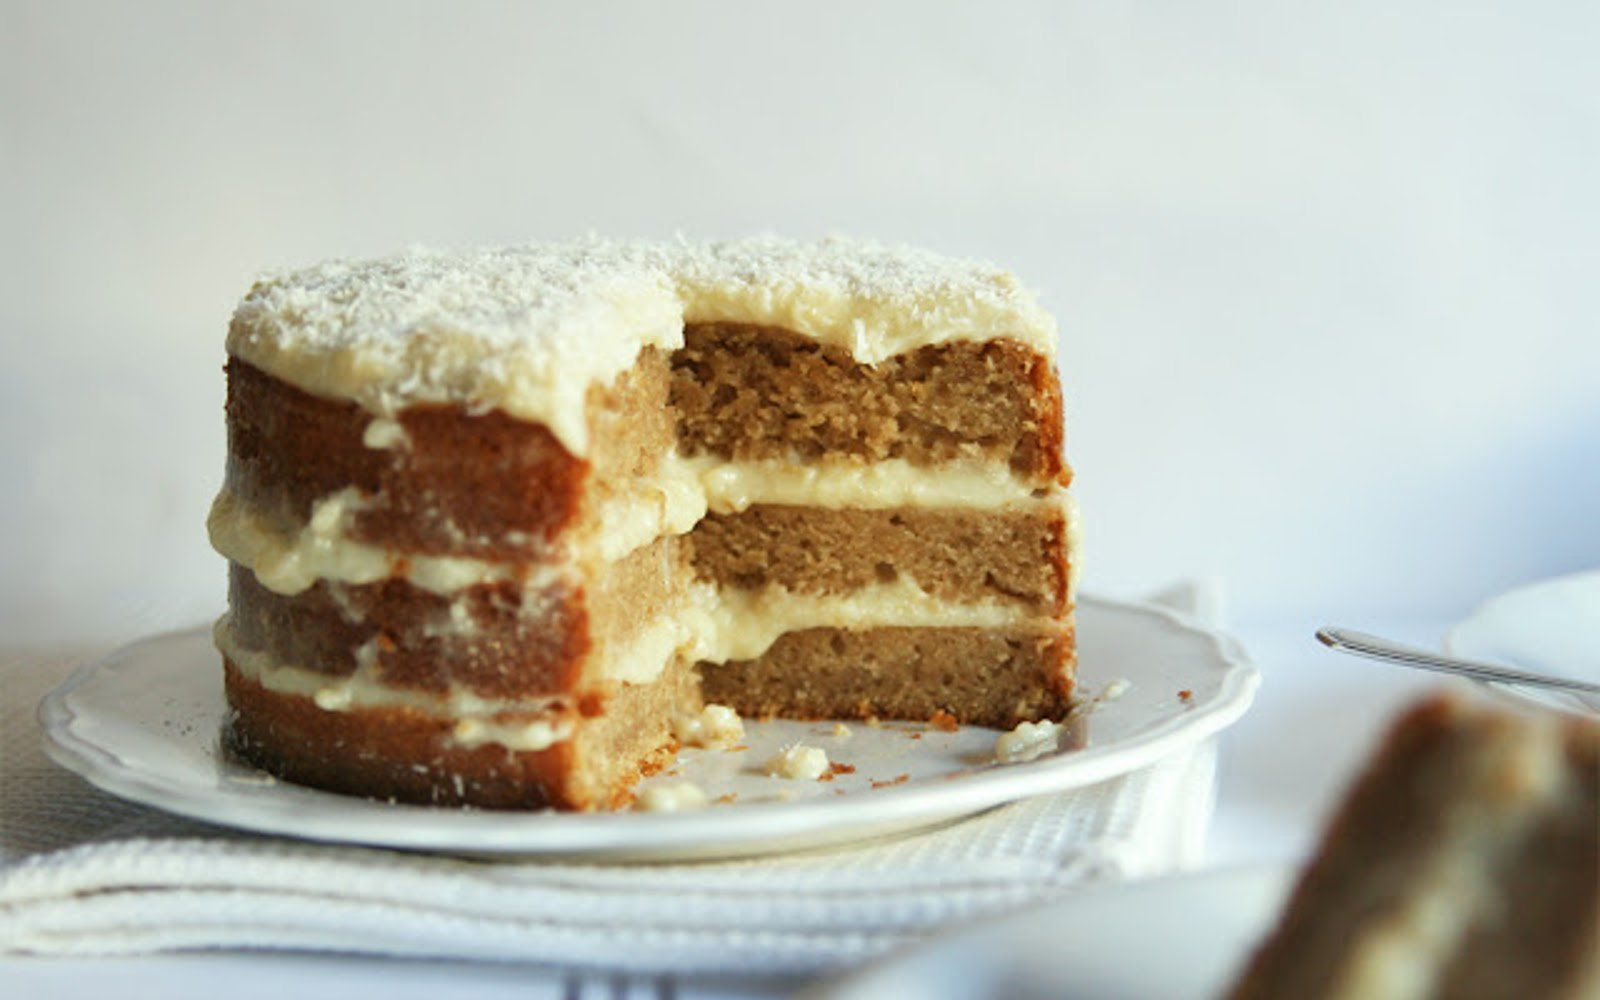 Everyone can agree that any time is a good time for cake! This amazing lemon cake is equal parts sweet and refreshing.